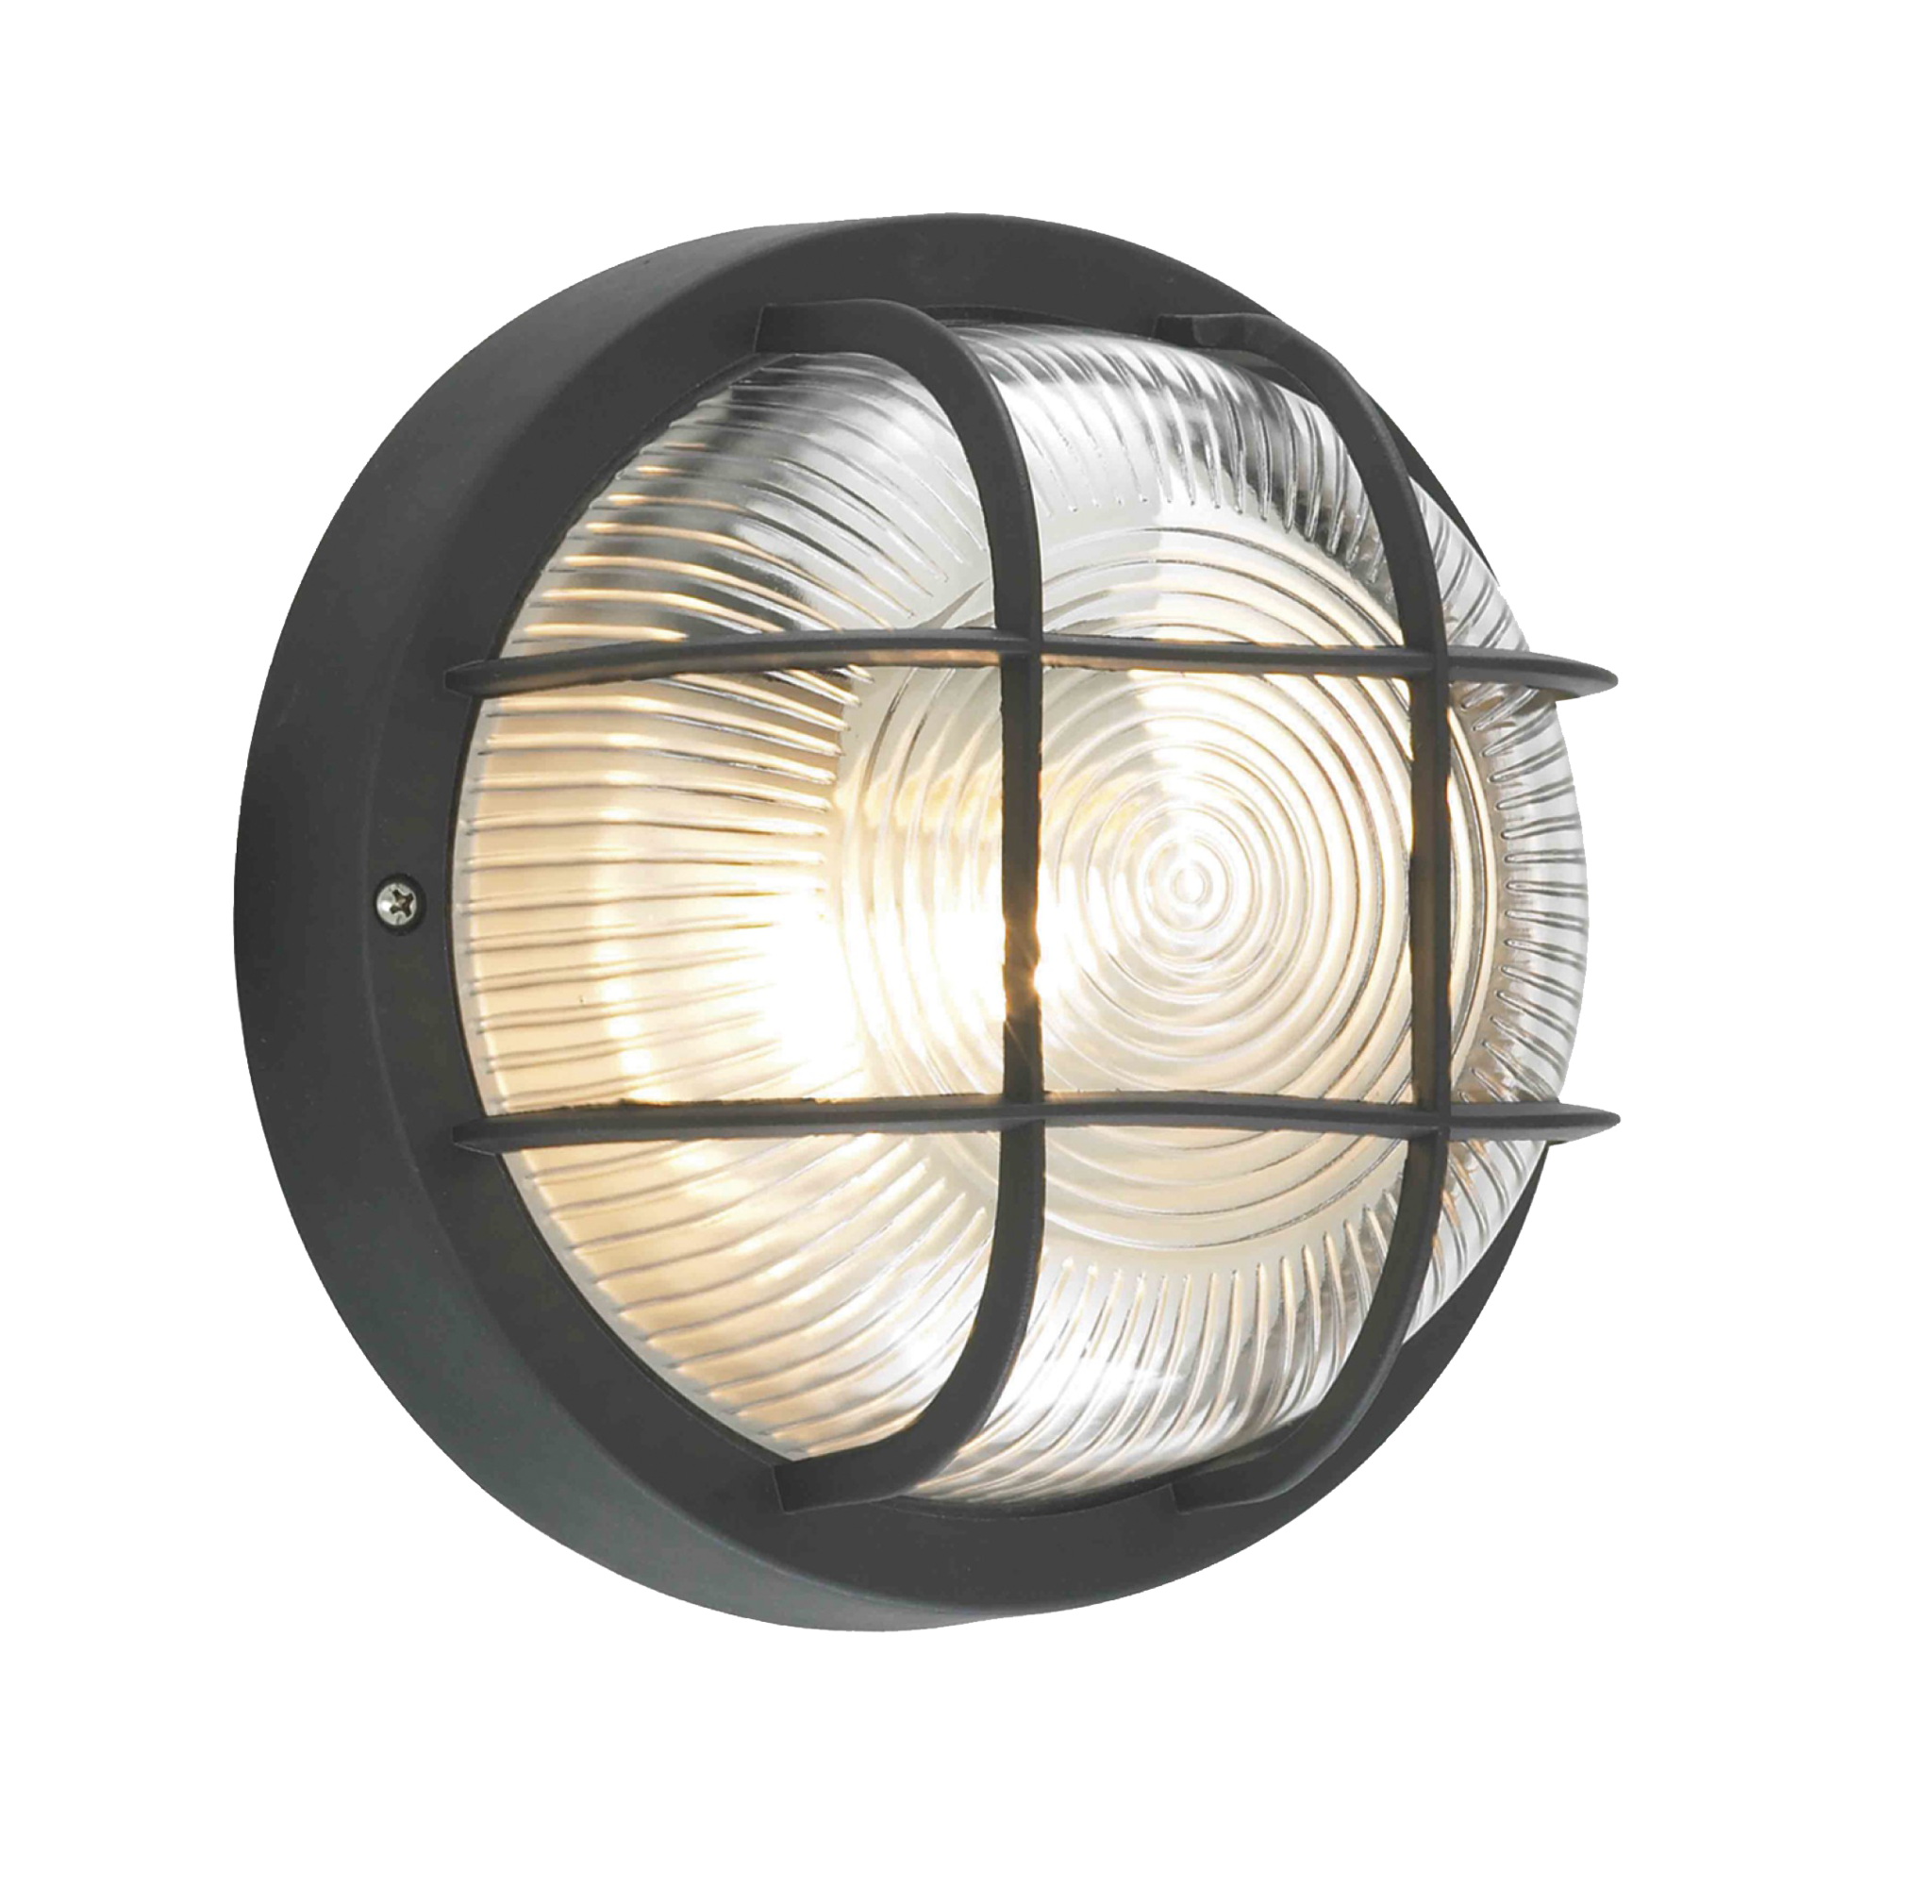 Lampsy Outdoor Round Bulkhead Wall Light OutdoorLampsy1